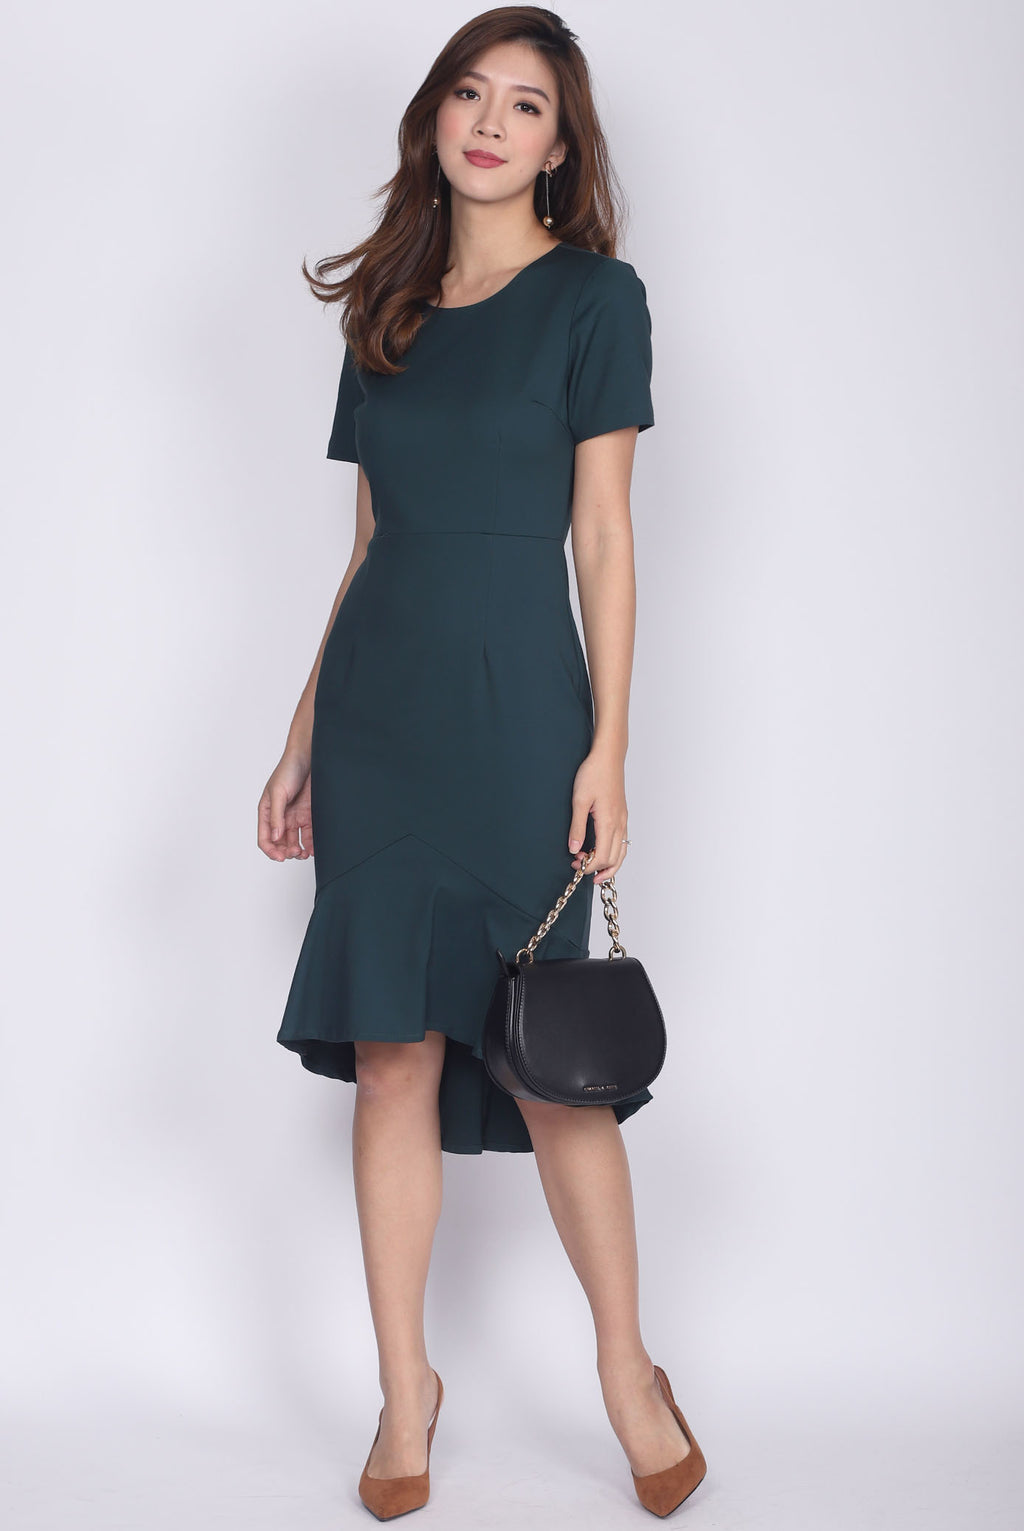 Magnild Sleeved Fishtail Dress In Forest Green